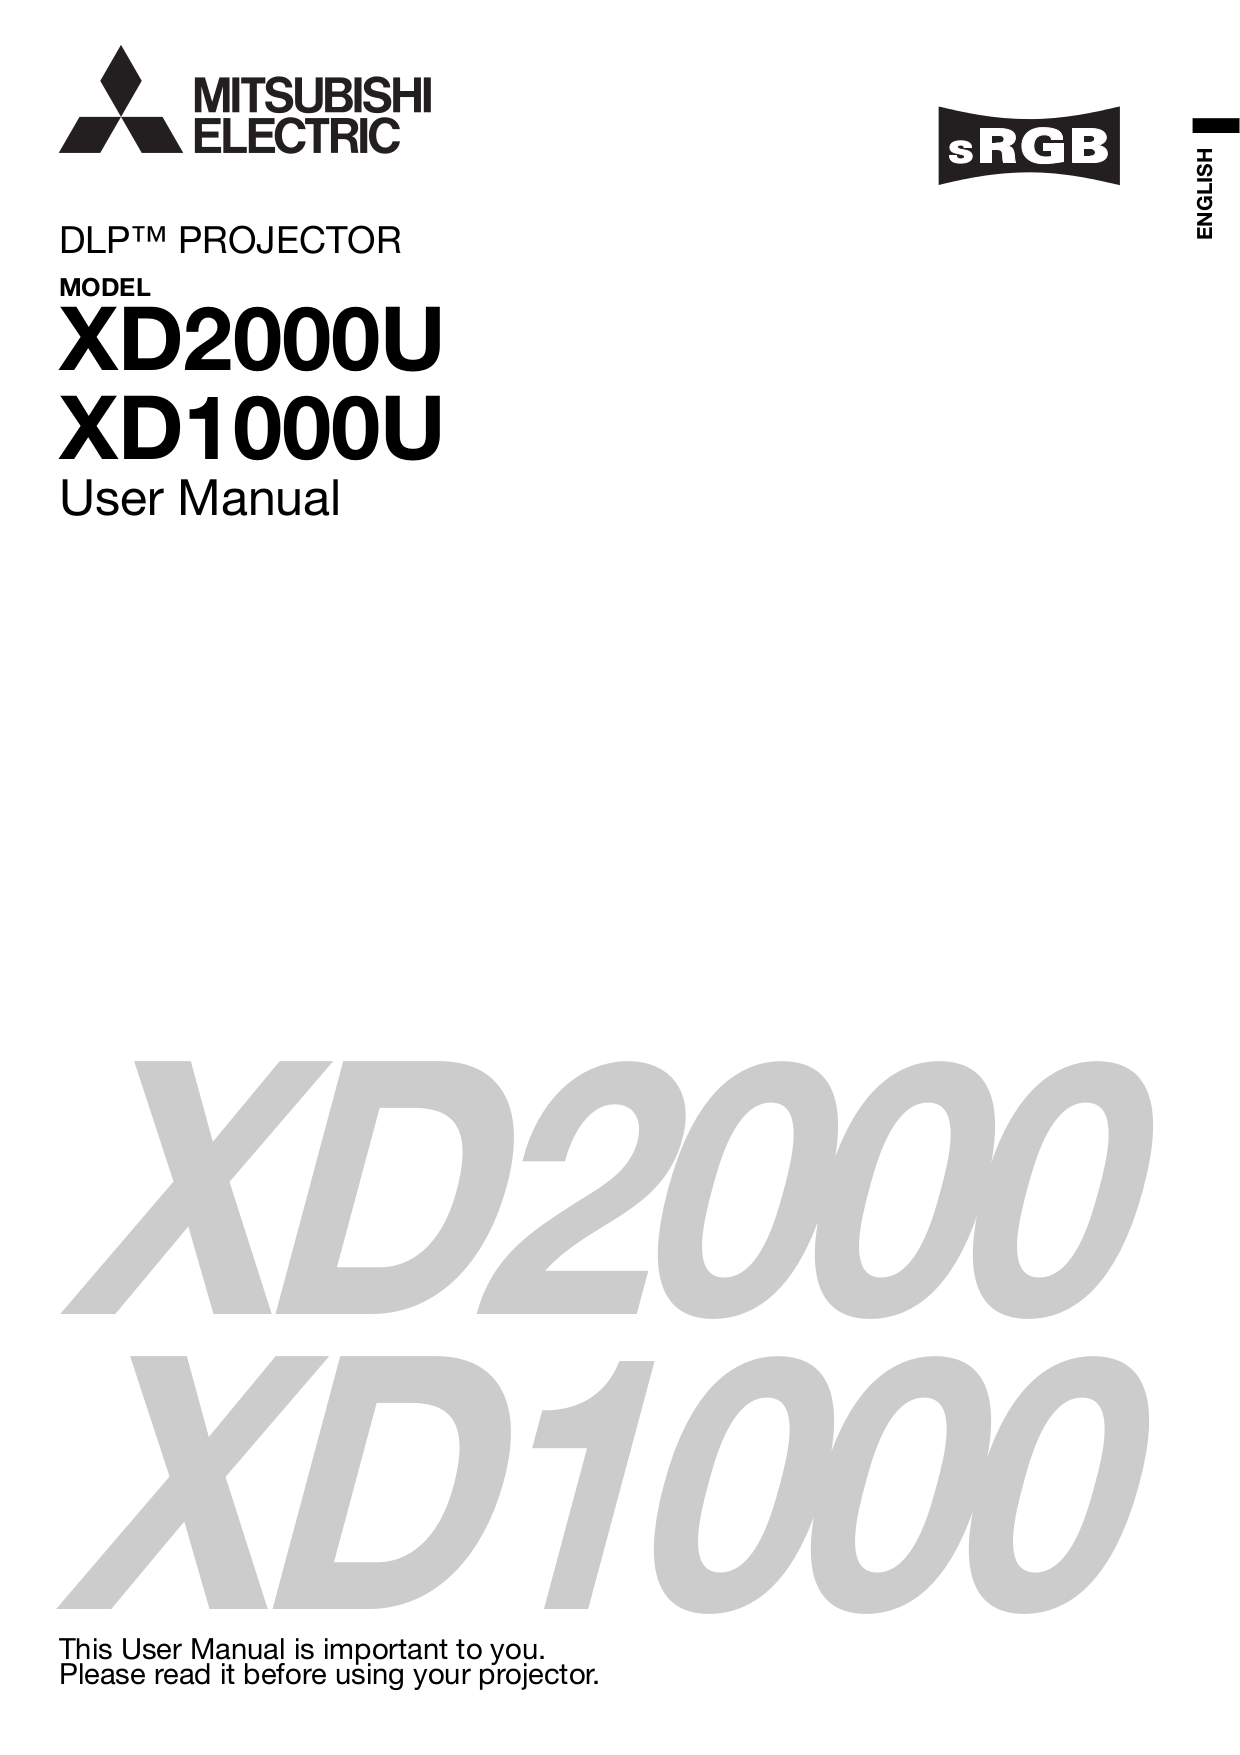 Download Free Pdf For Mitsubishi Xd2000u Projector Manual border=